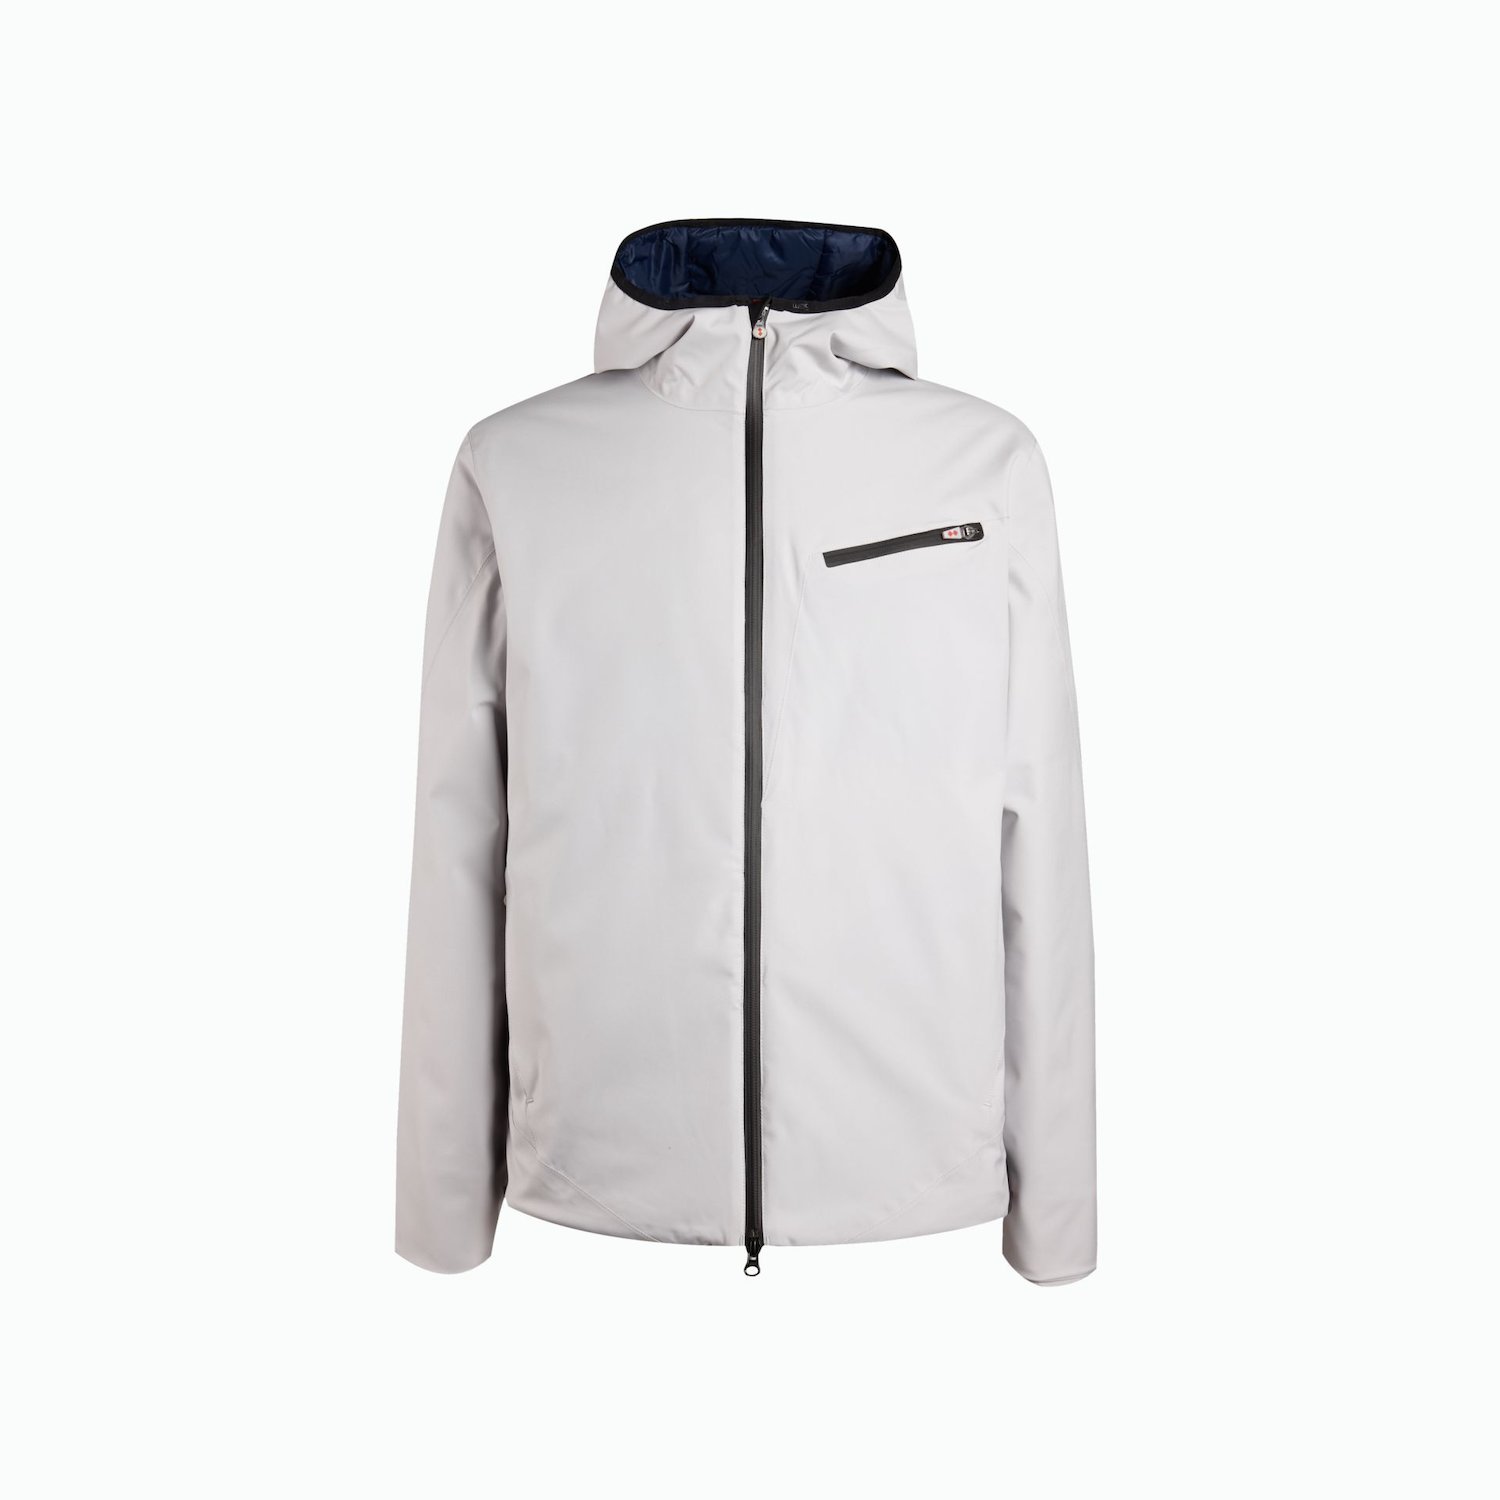 New Doohan jacket - Fog Grey